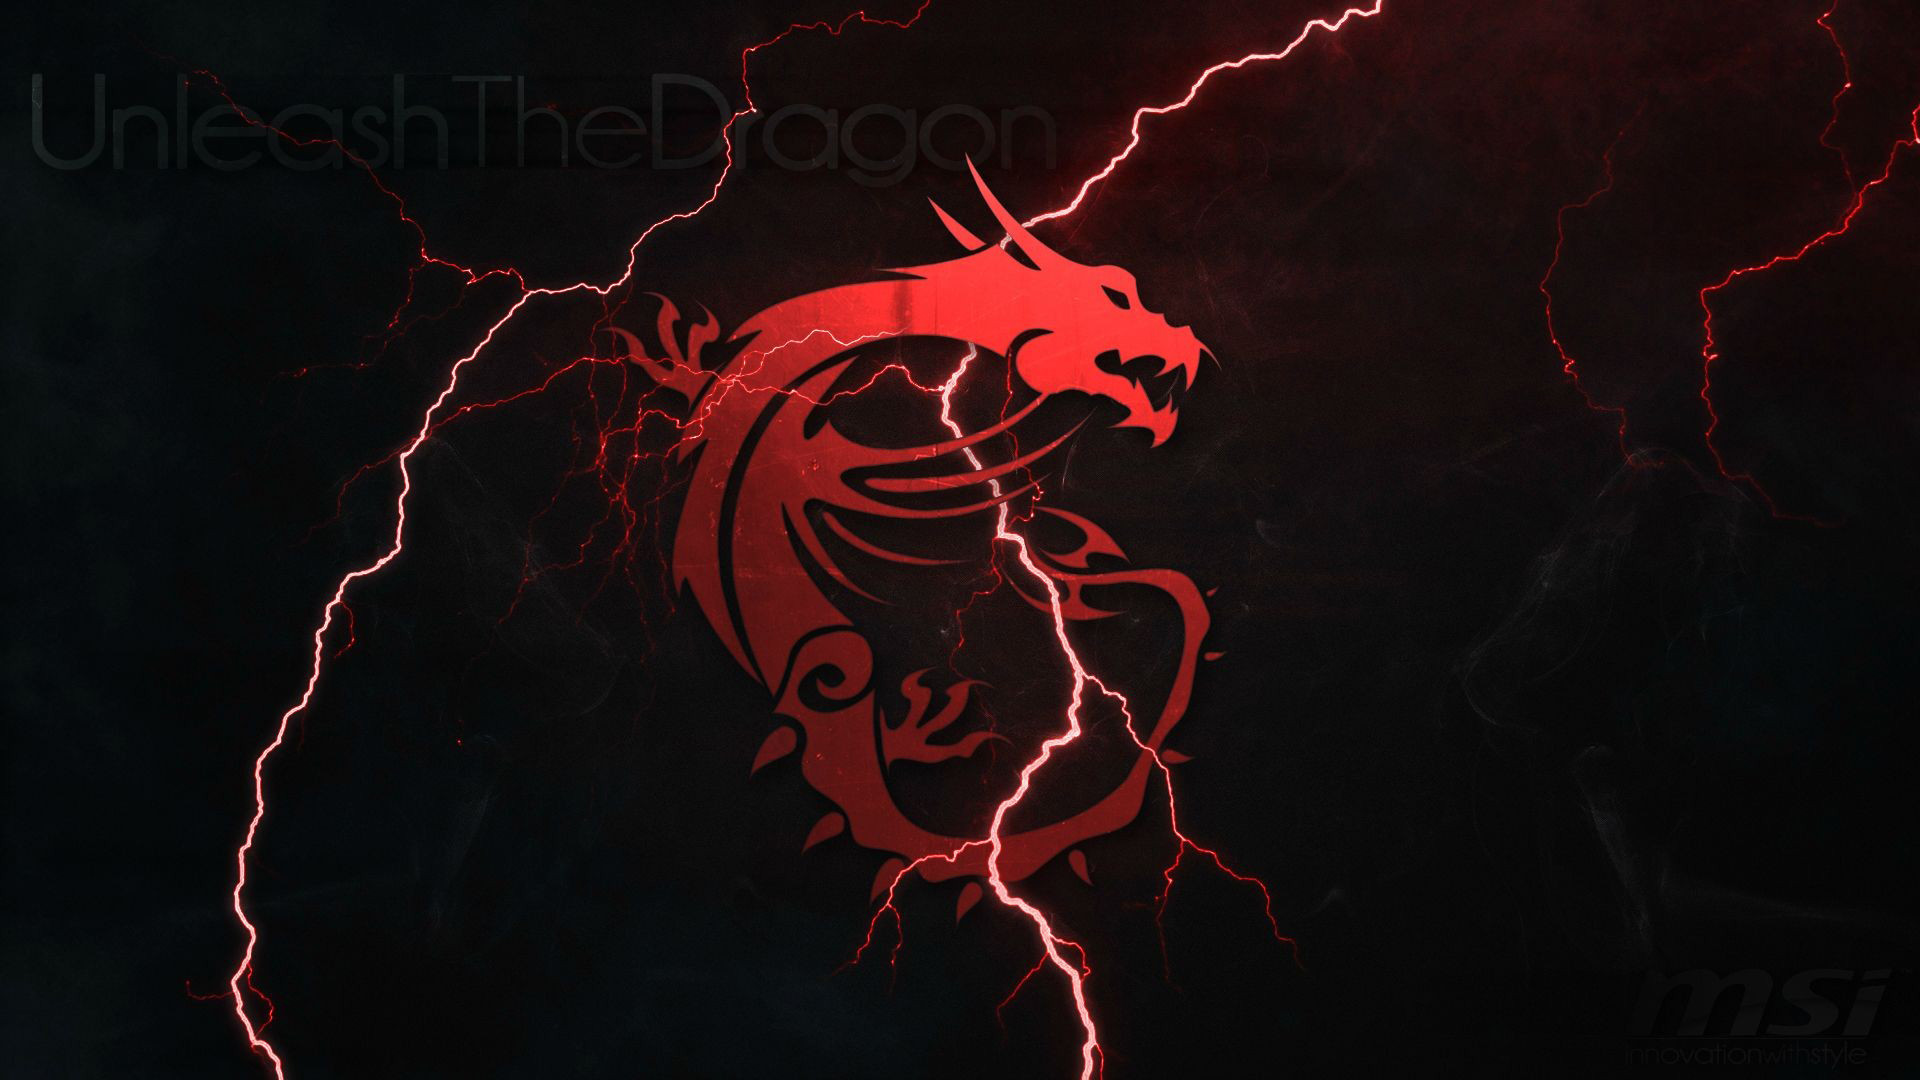 msi logo red dragon hd 1080p wallpaper. compatible for .